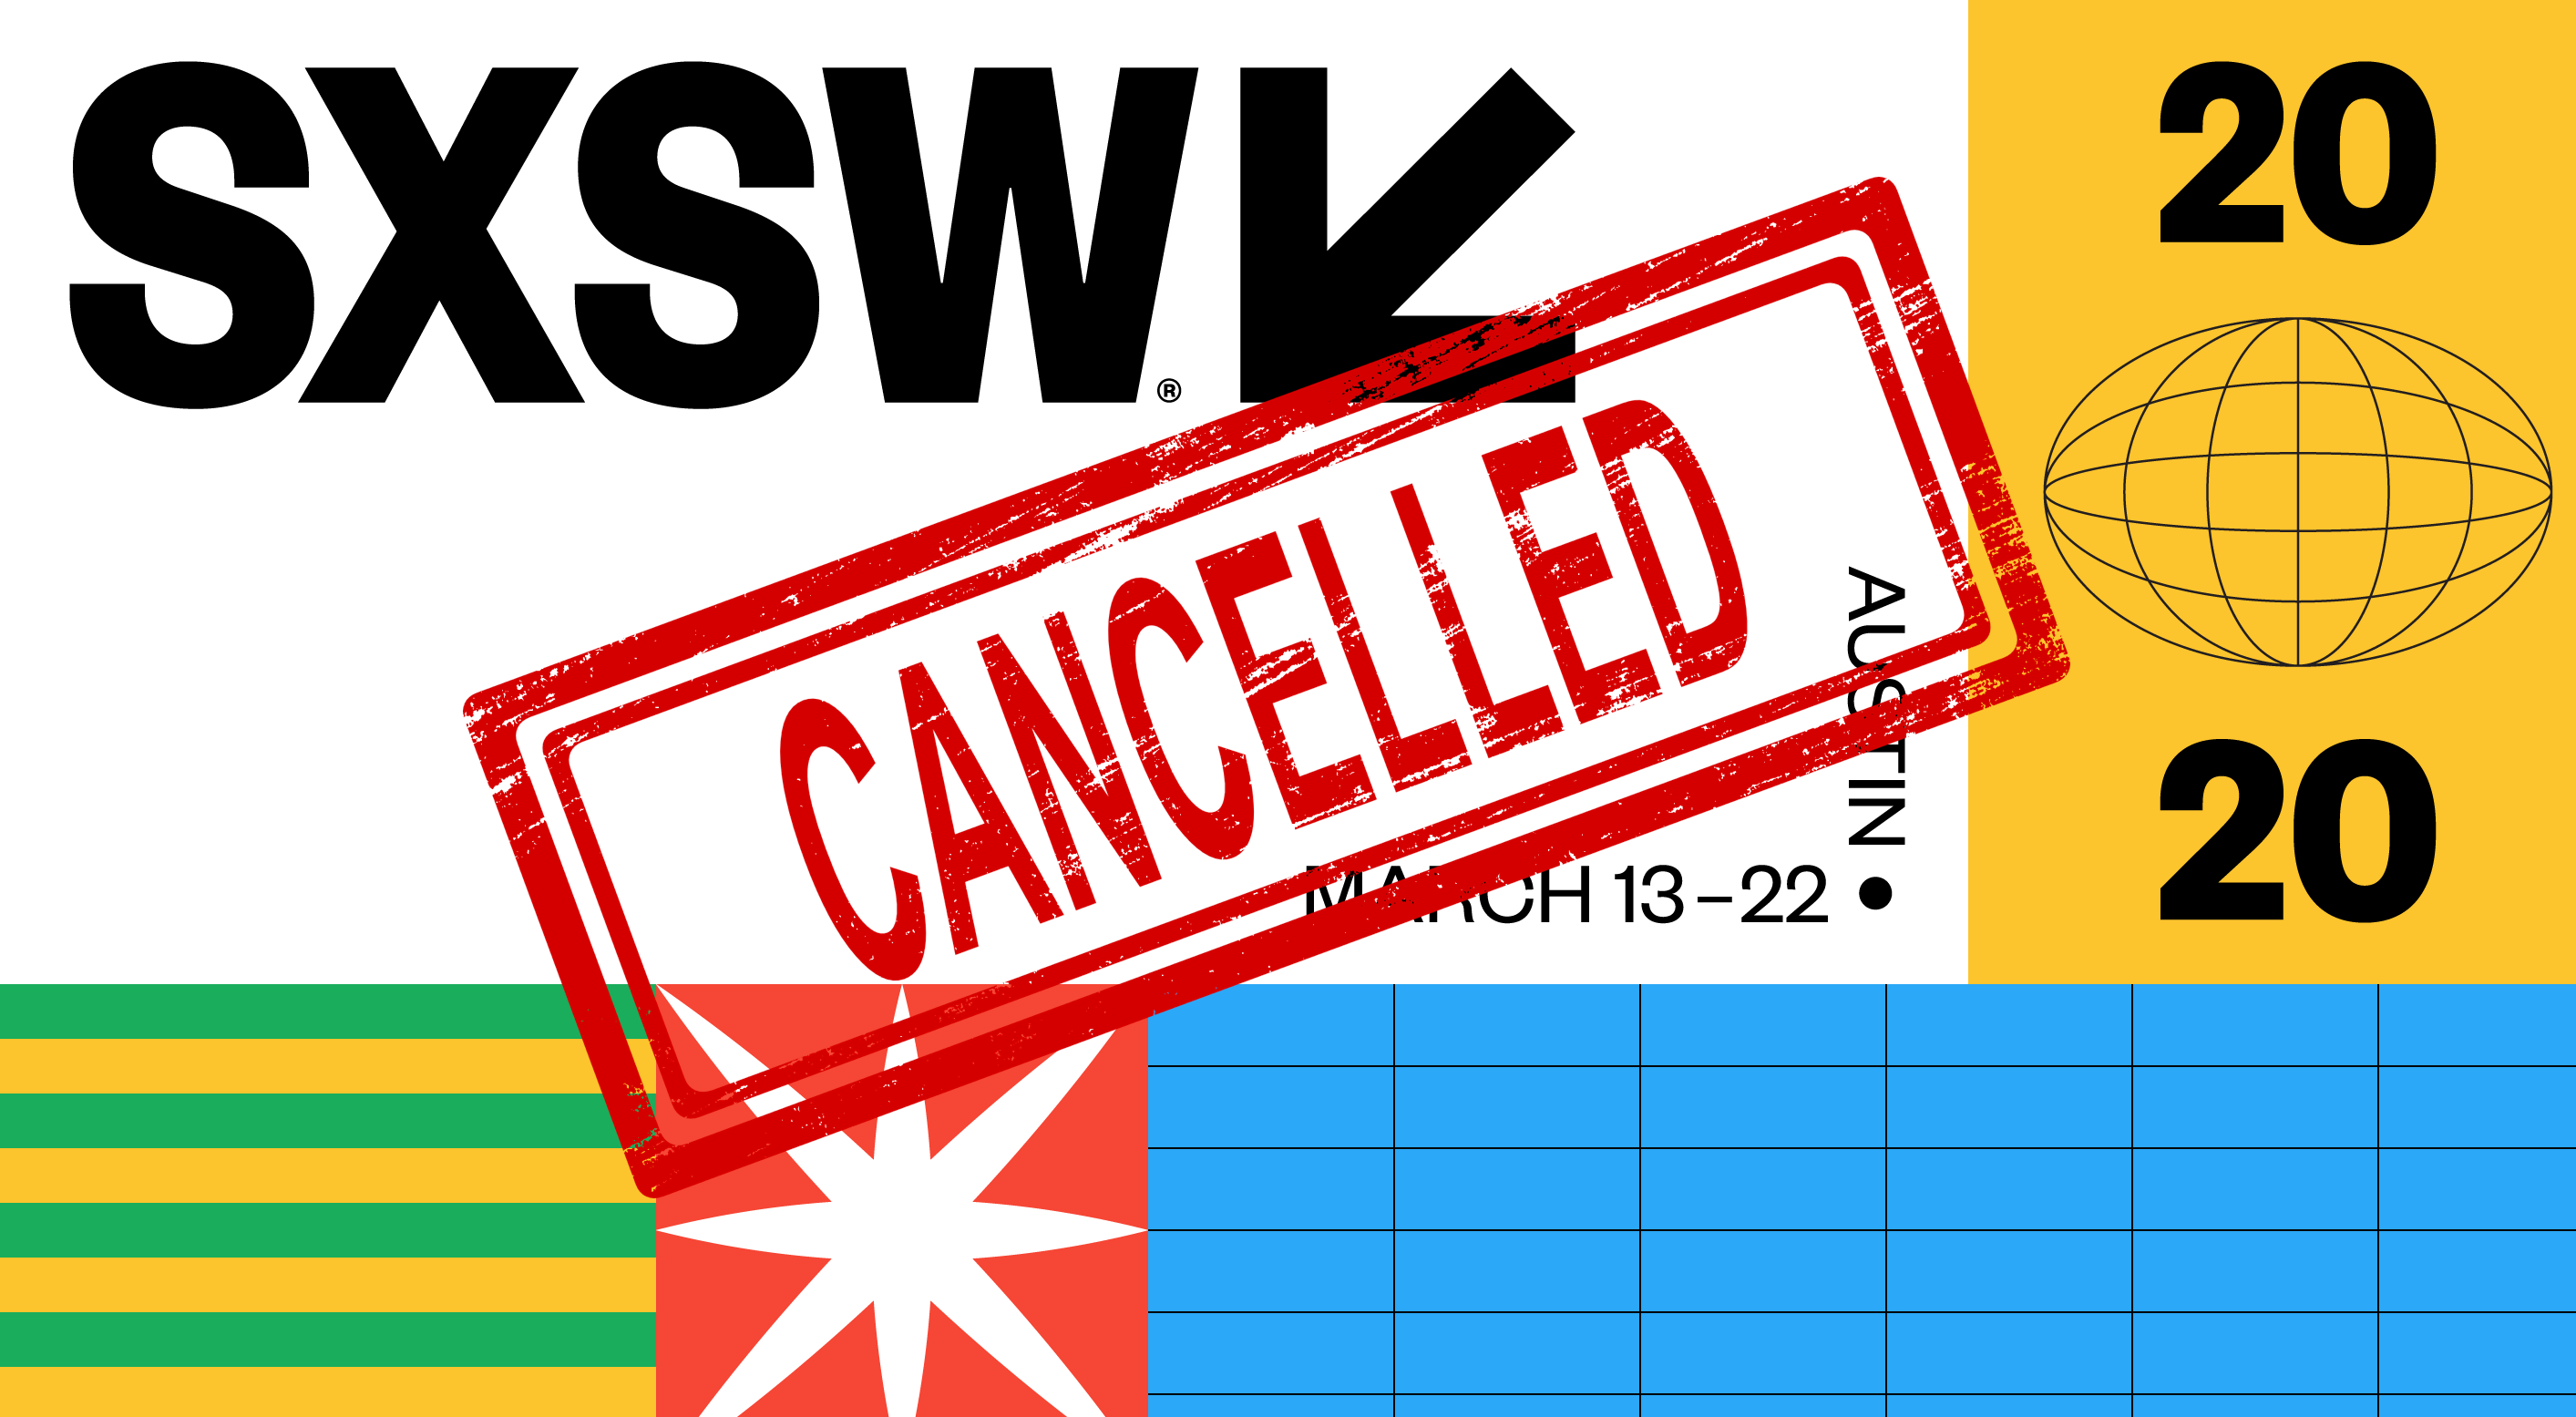 sxsw-cancelled-1.png